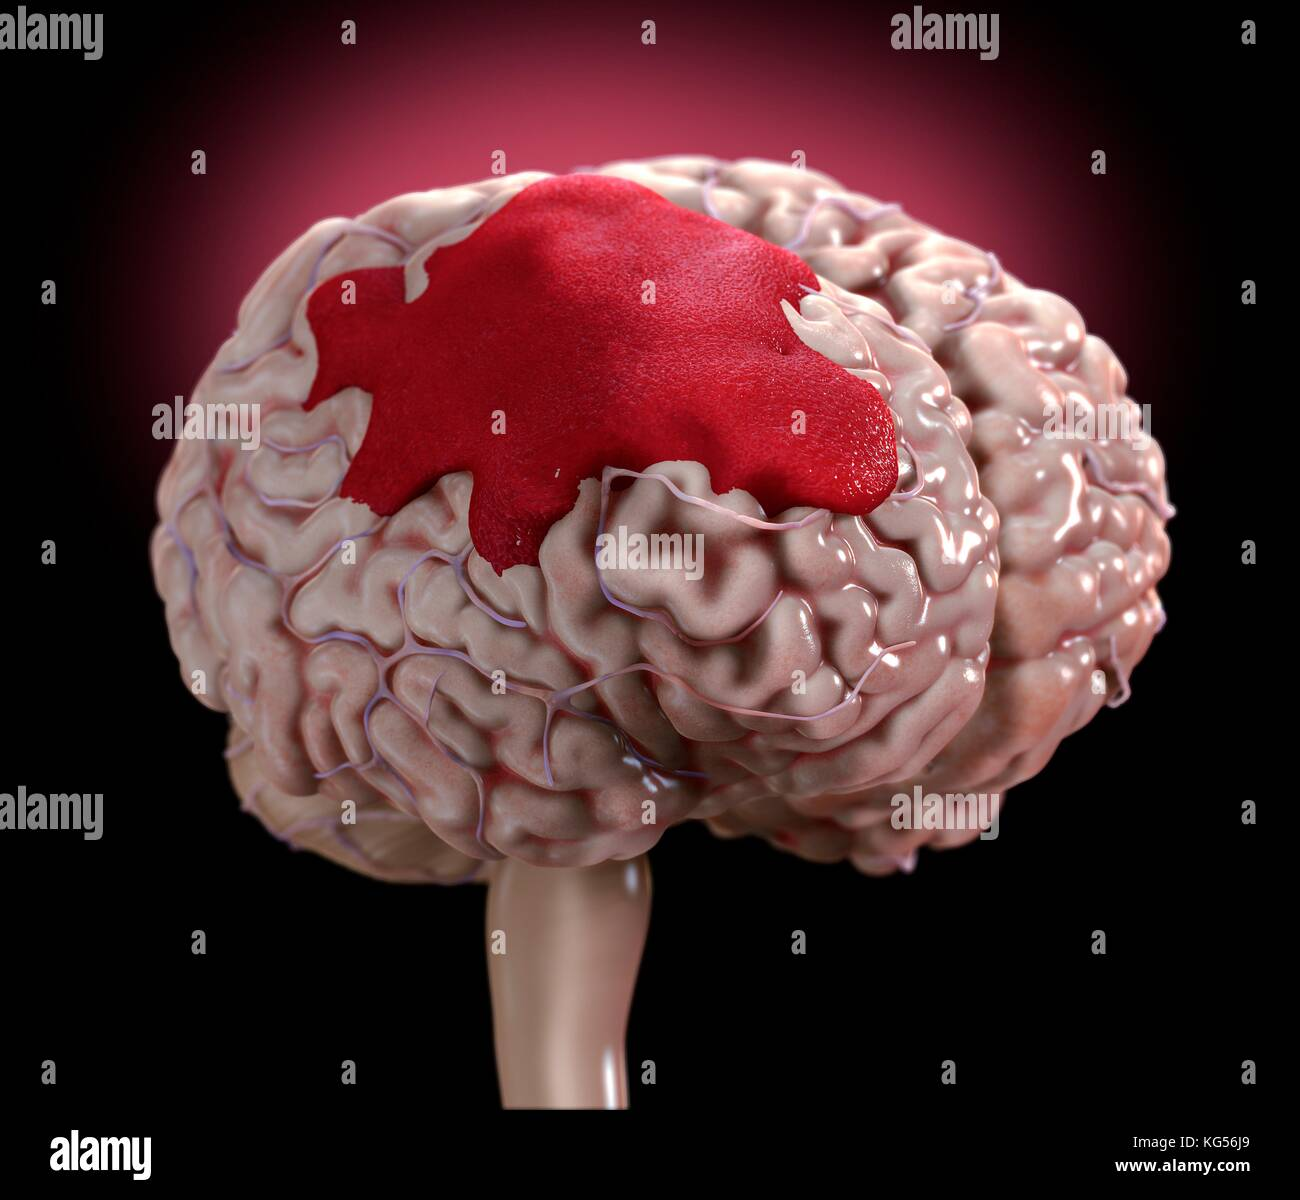 Brain Hemorrhage Anatomy Stock Photos & Brain Hemorrhage Anatomy ...